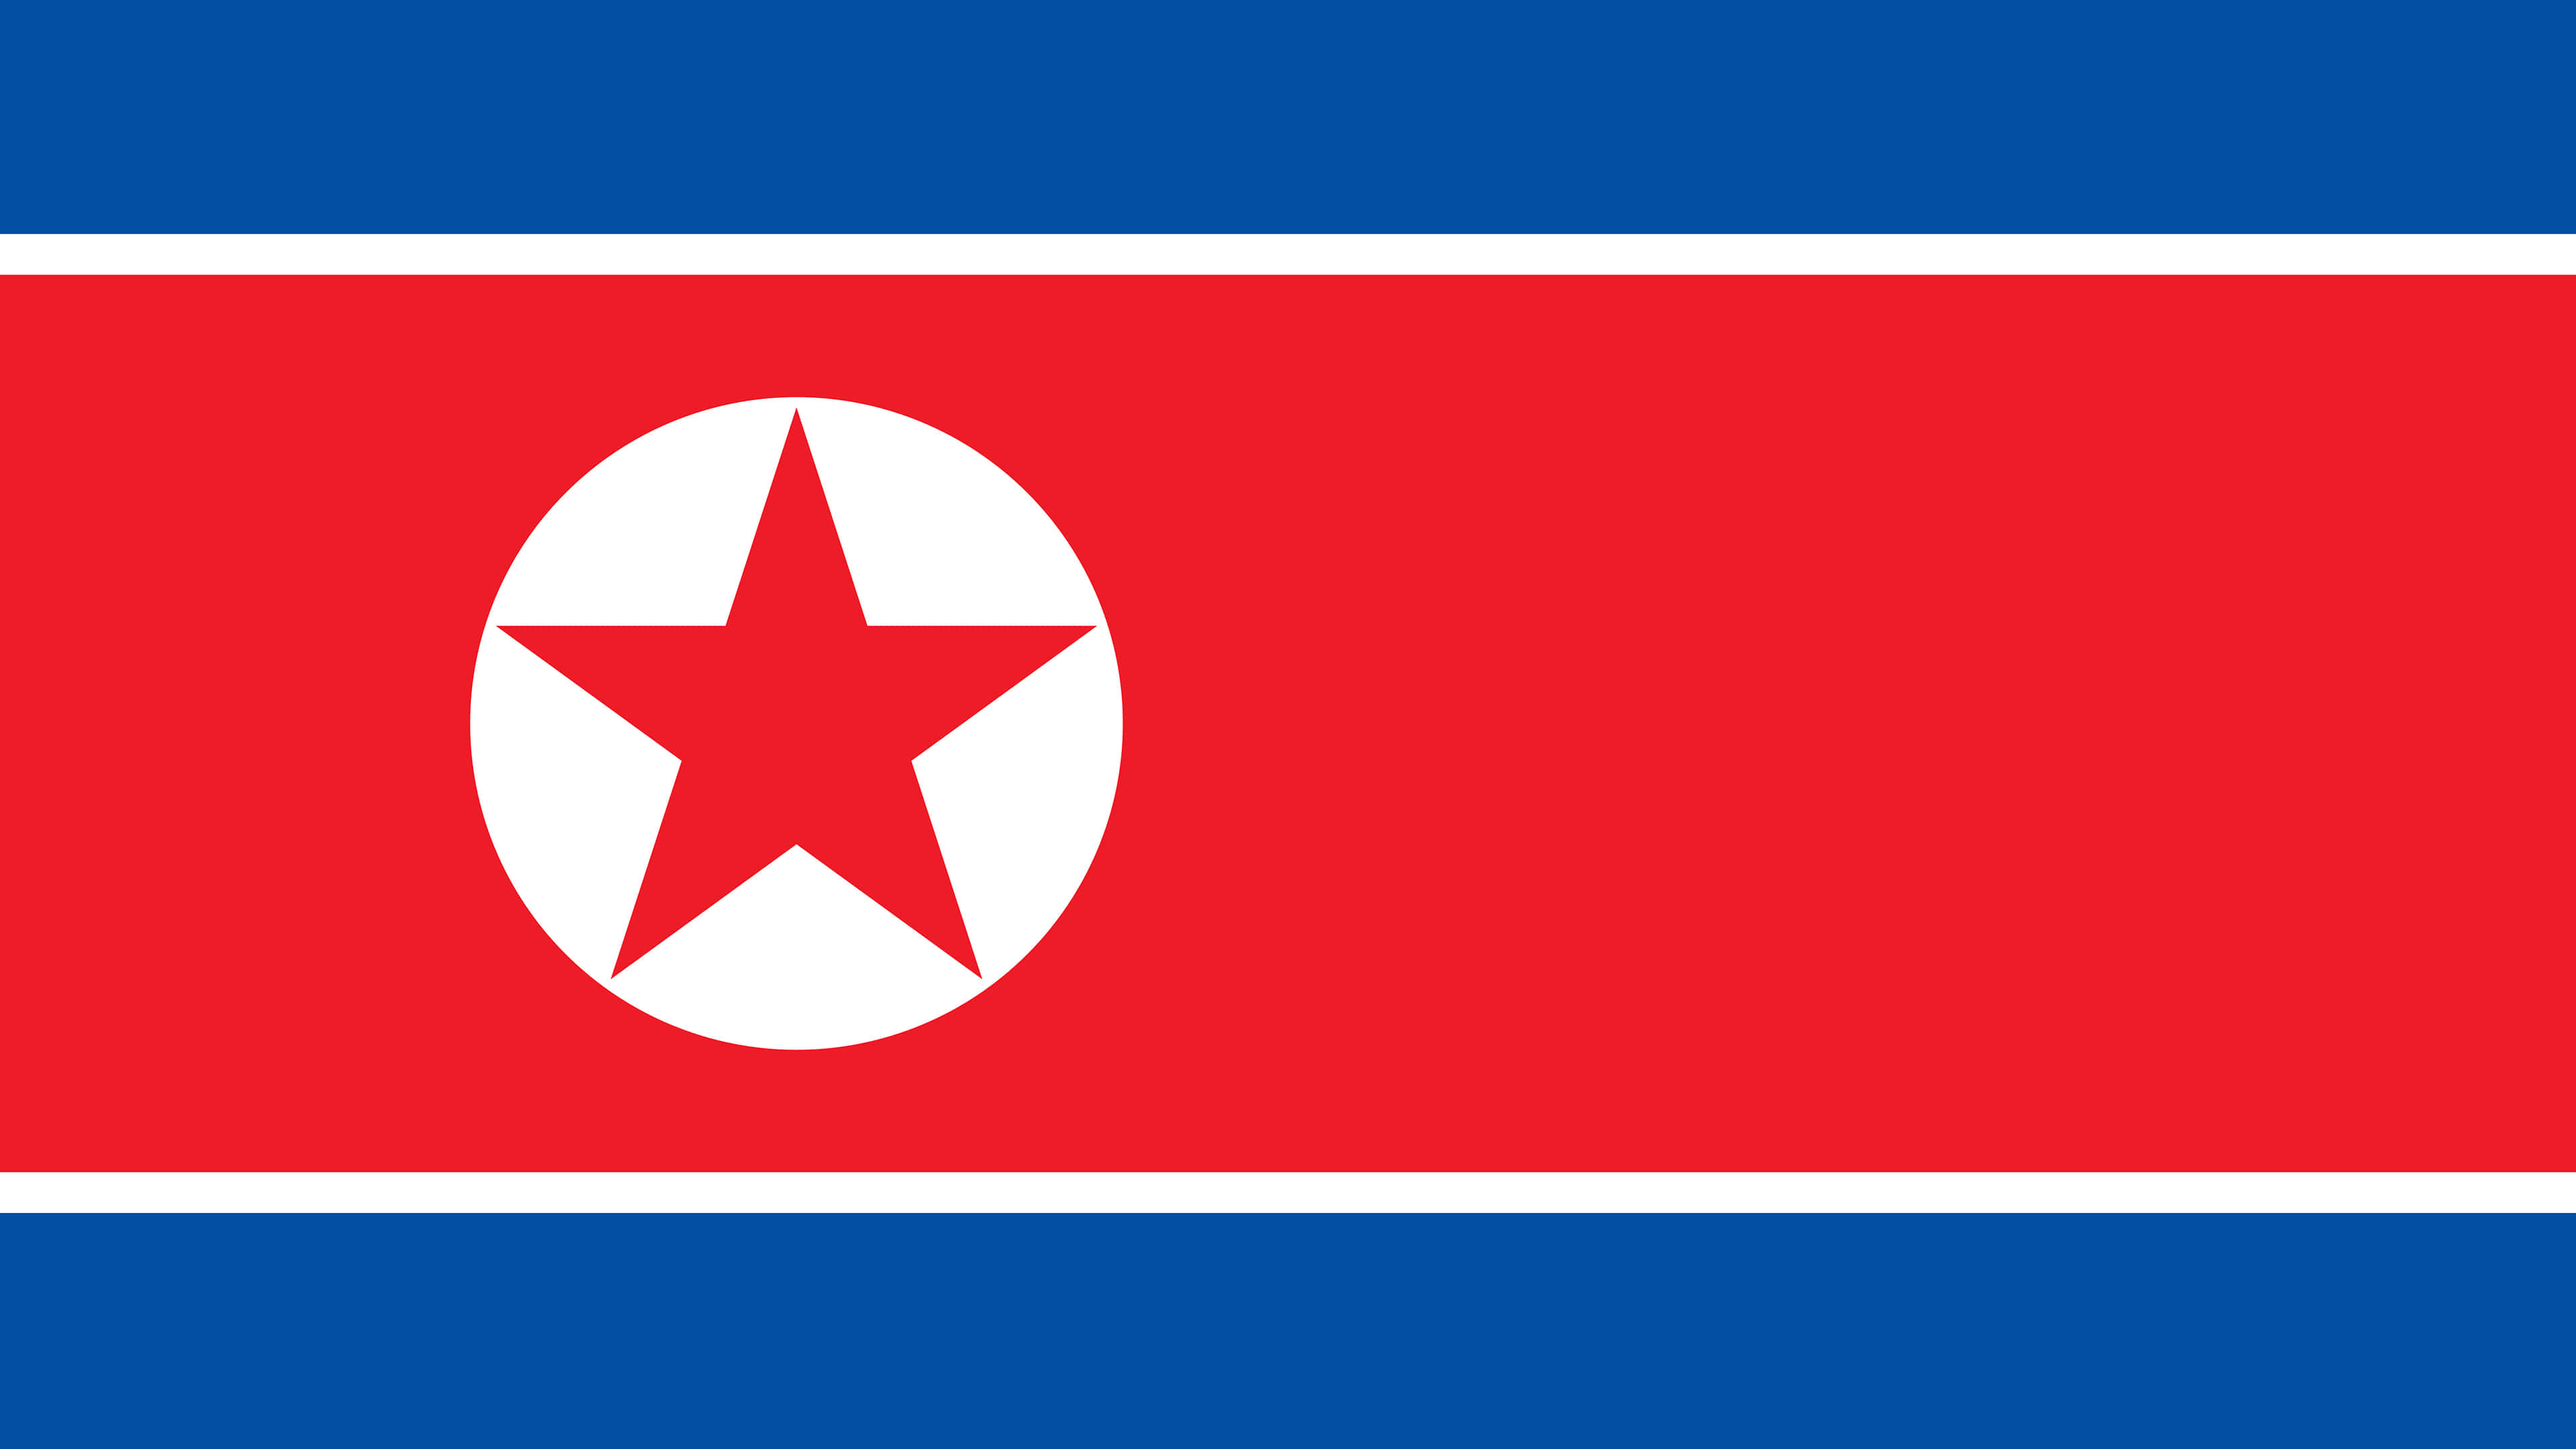 north korea dprk flag uhd 4k wallpaper